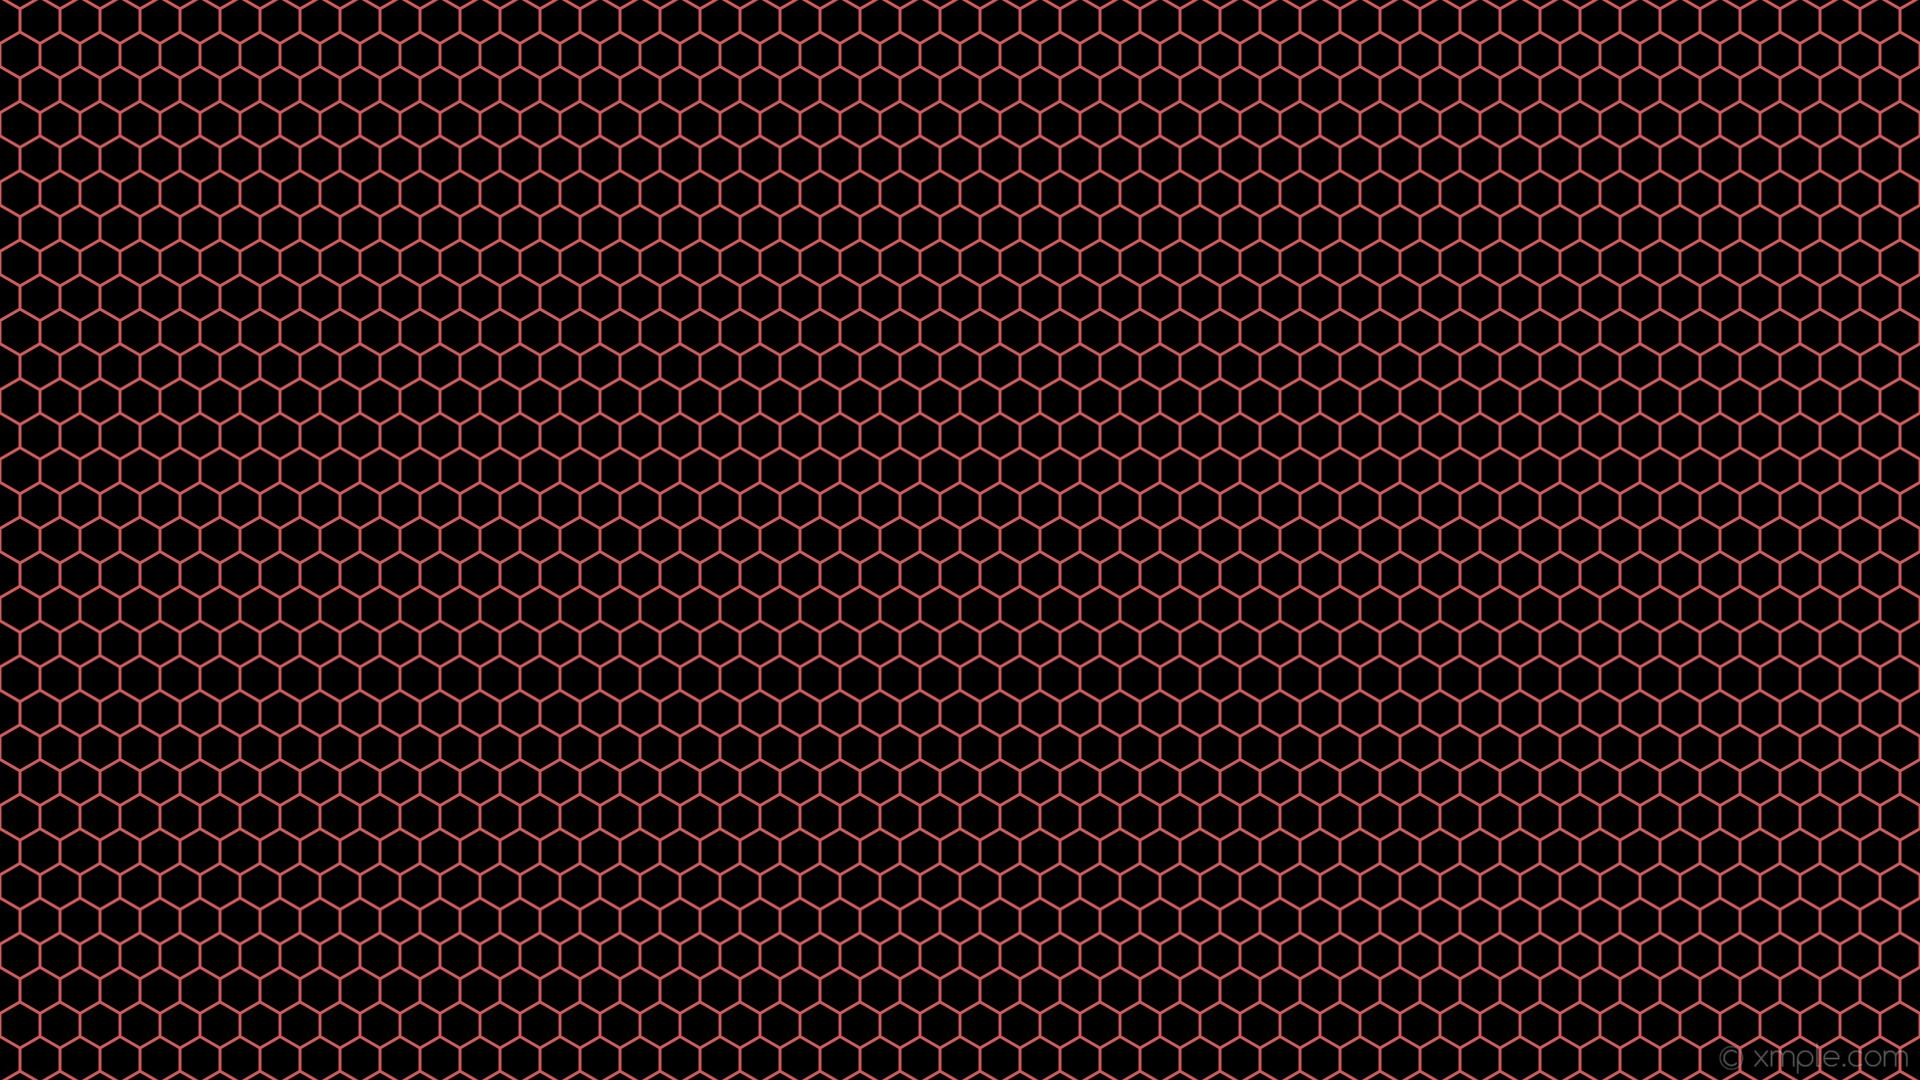 wallpaper red honeycomb black hexagon beehive indian red #000000 #cd5c5c 0°  3px 40px